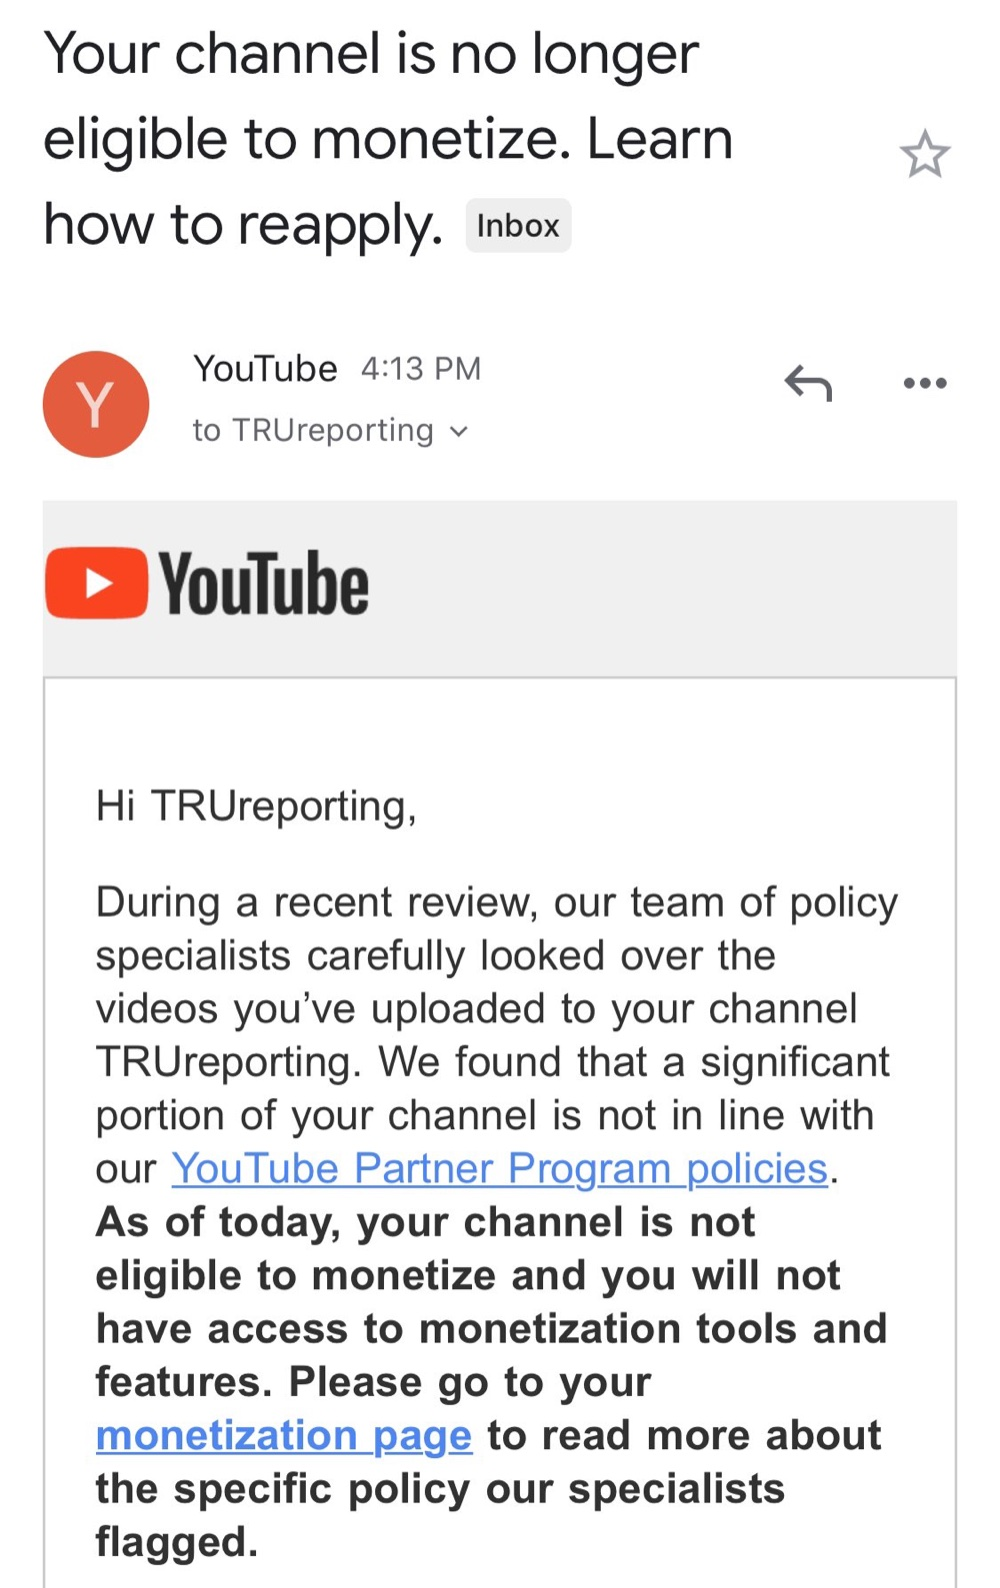 YouTube told TRUreporting the channel is no longer eligible to monetize (Twitter - @samtripoli)